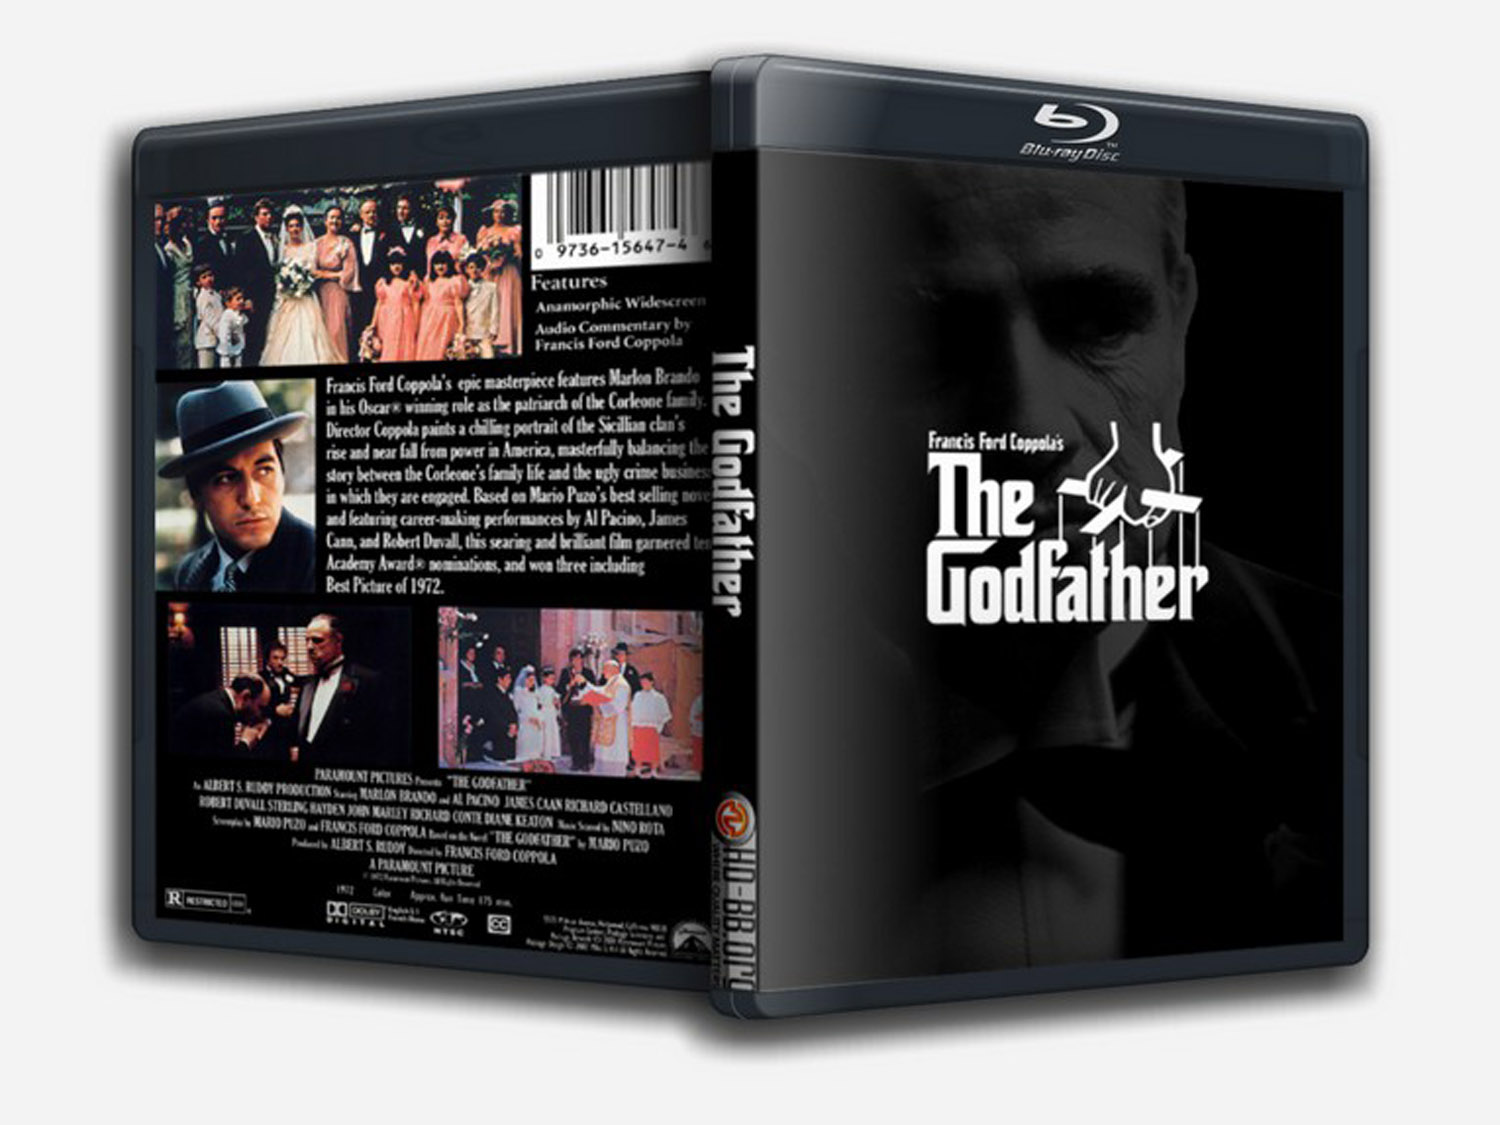 The Godfather Blu-ray DVD Case Box